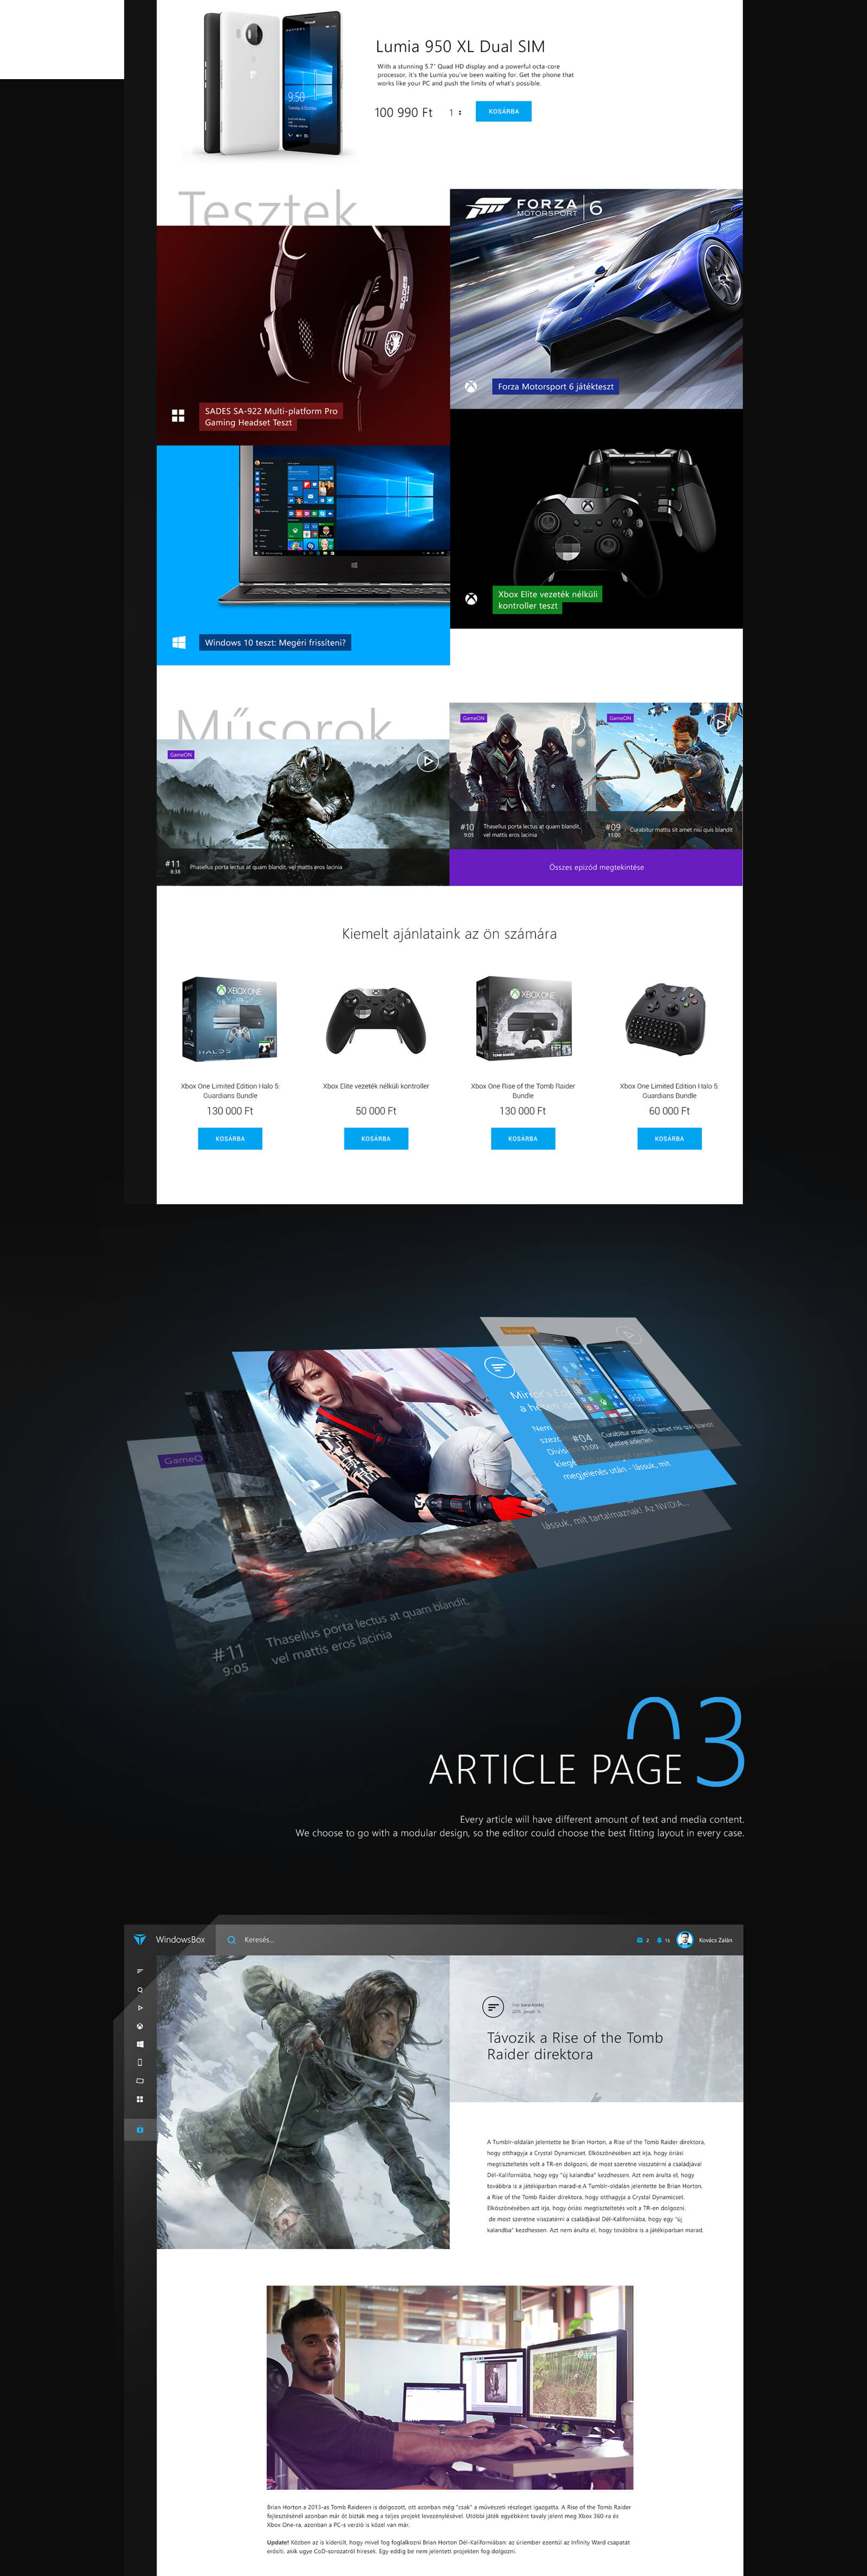 Windows box website rebrand design feature by Finsweet